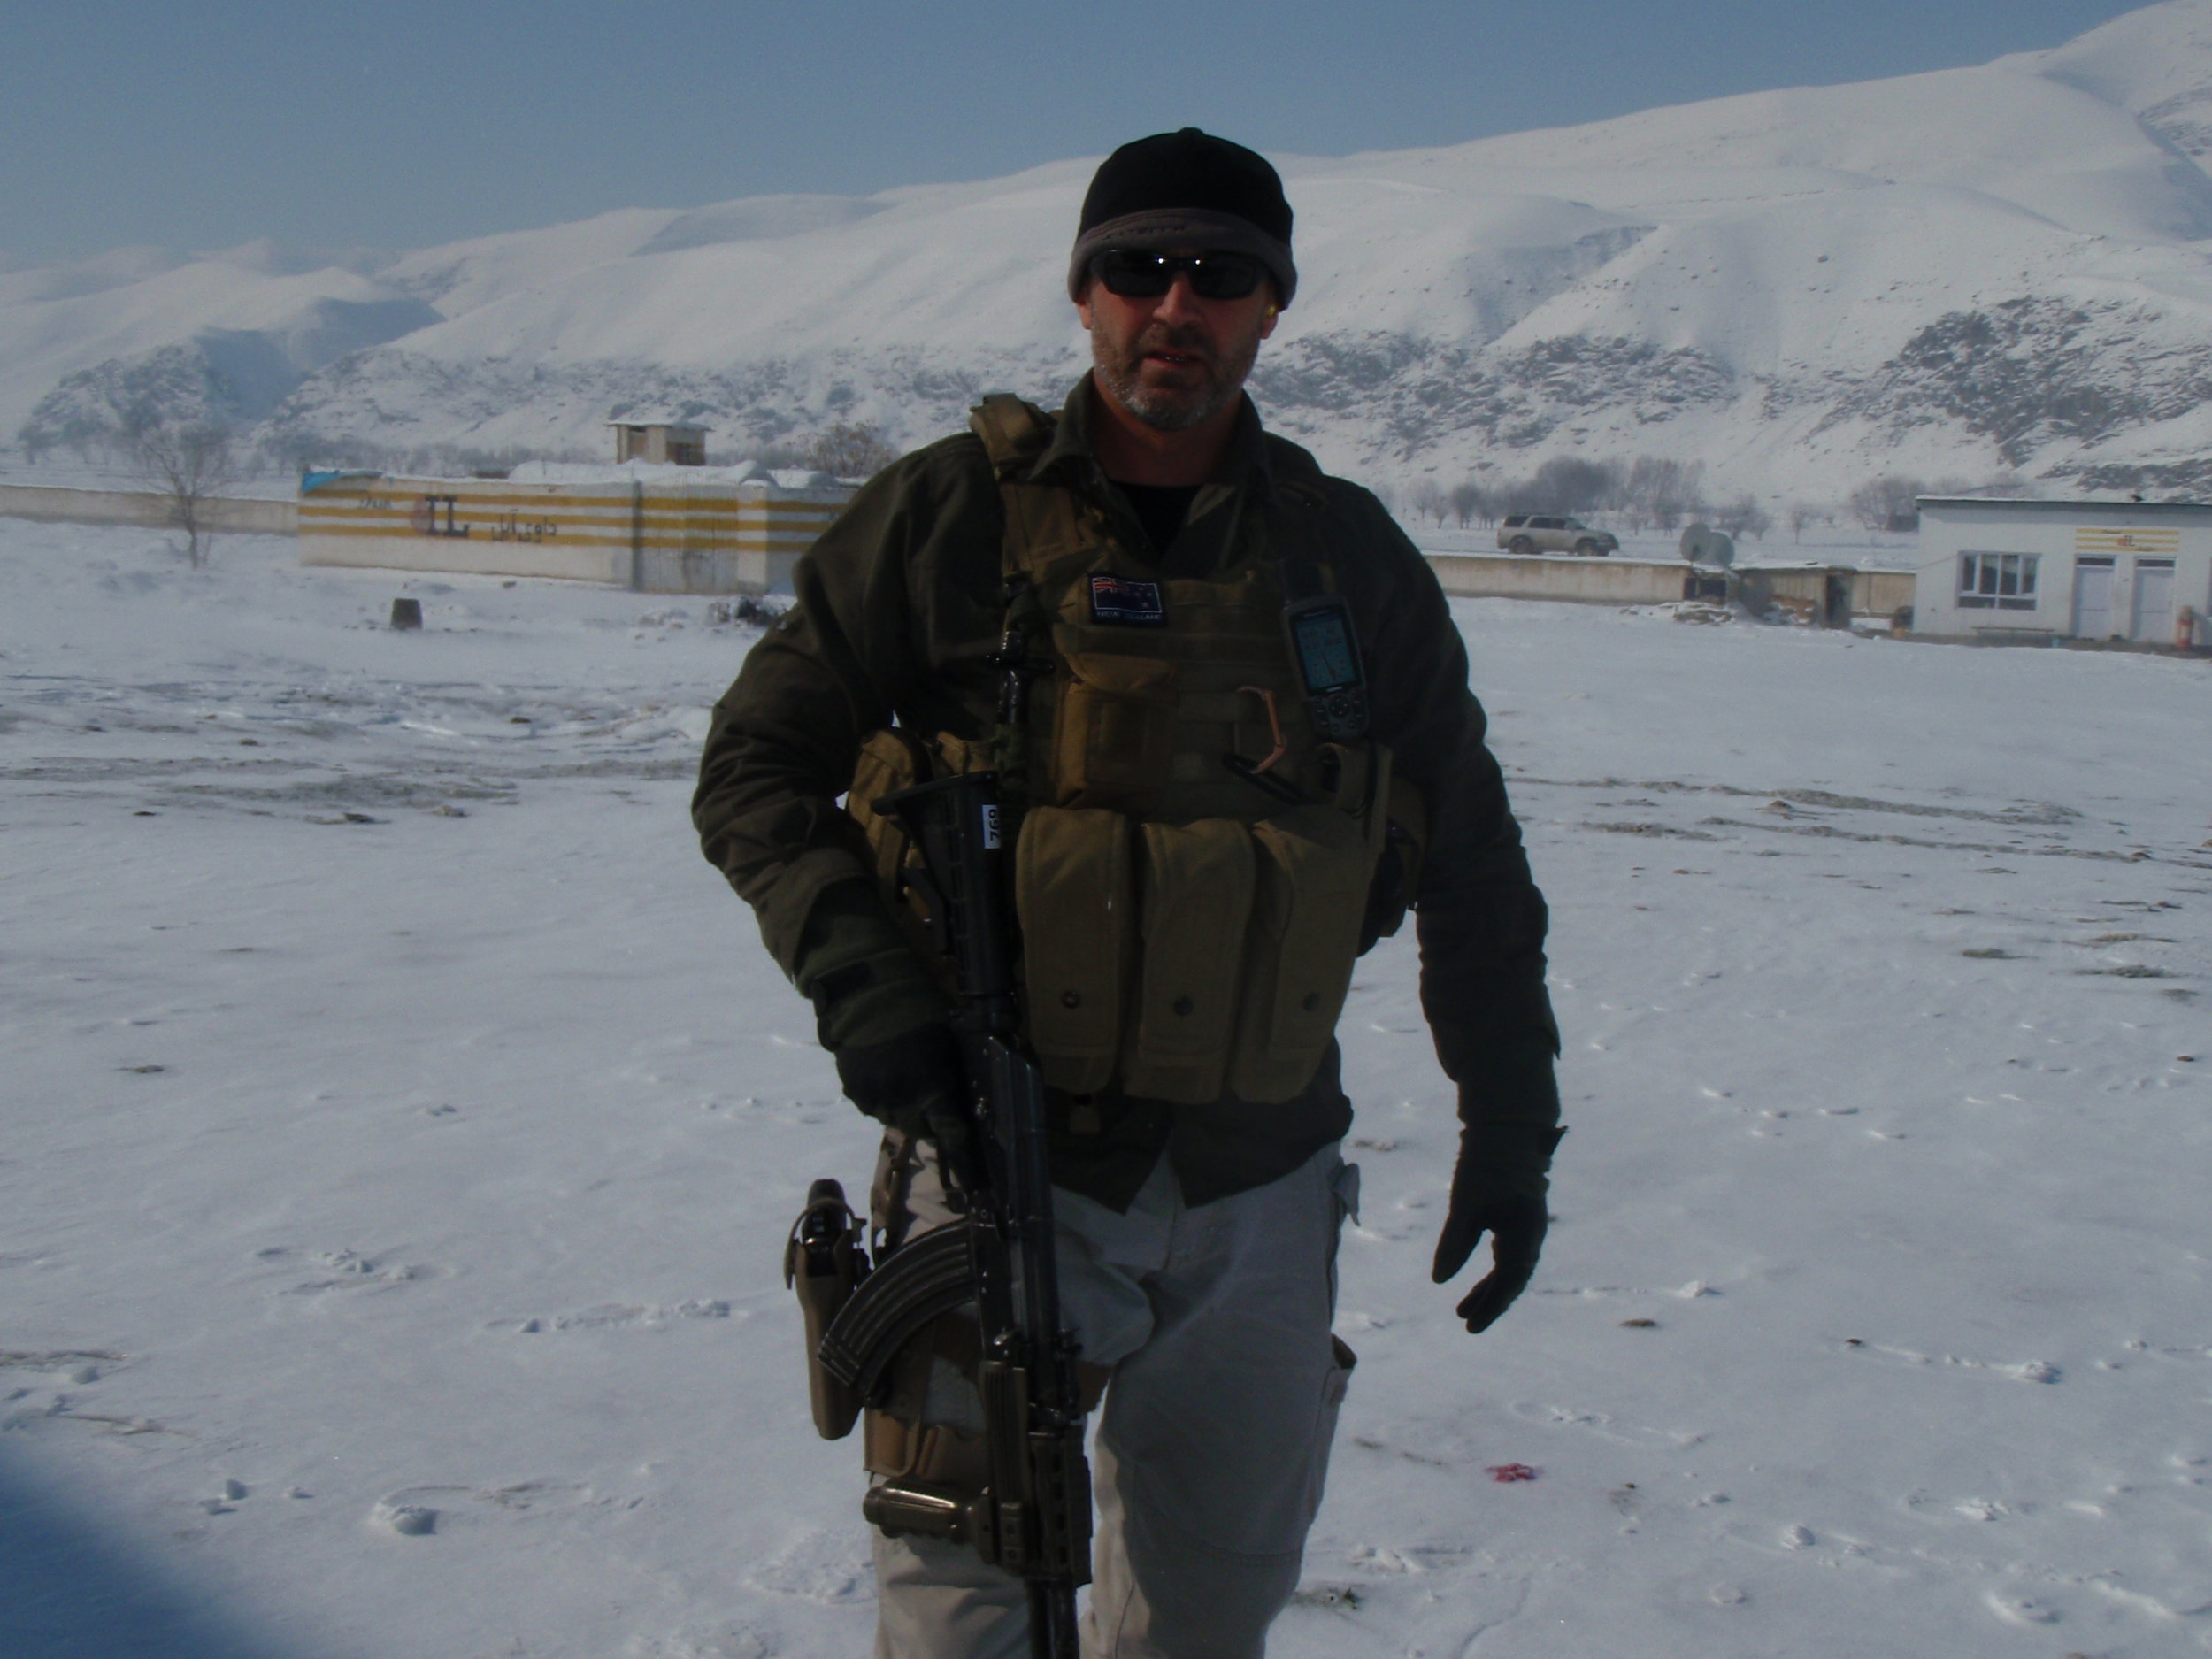 """NORTHERN AFGHANISTAN - There is a story as to why this picture is called """"not the four seasons hotel"""" - Learn more from this adventure. Our H&S talks , to being involved in a helicopter crash in this part of the world - not ideal but plenty to learn."""